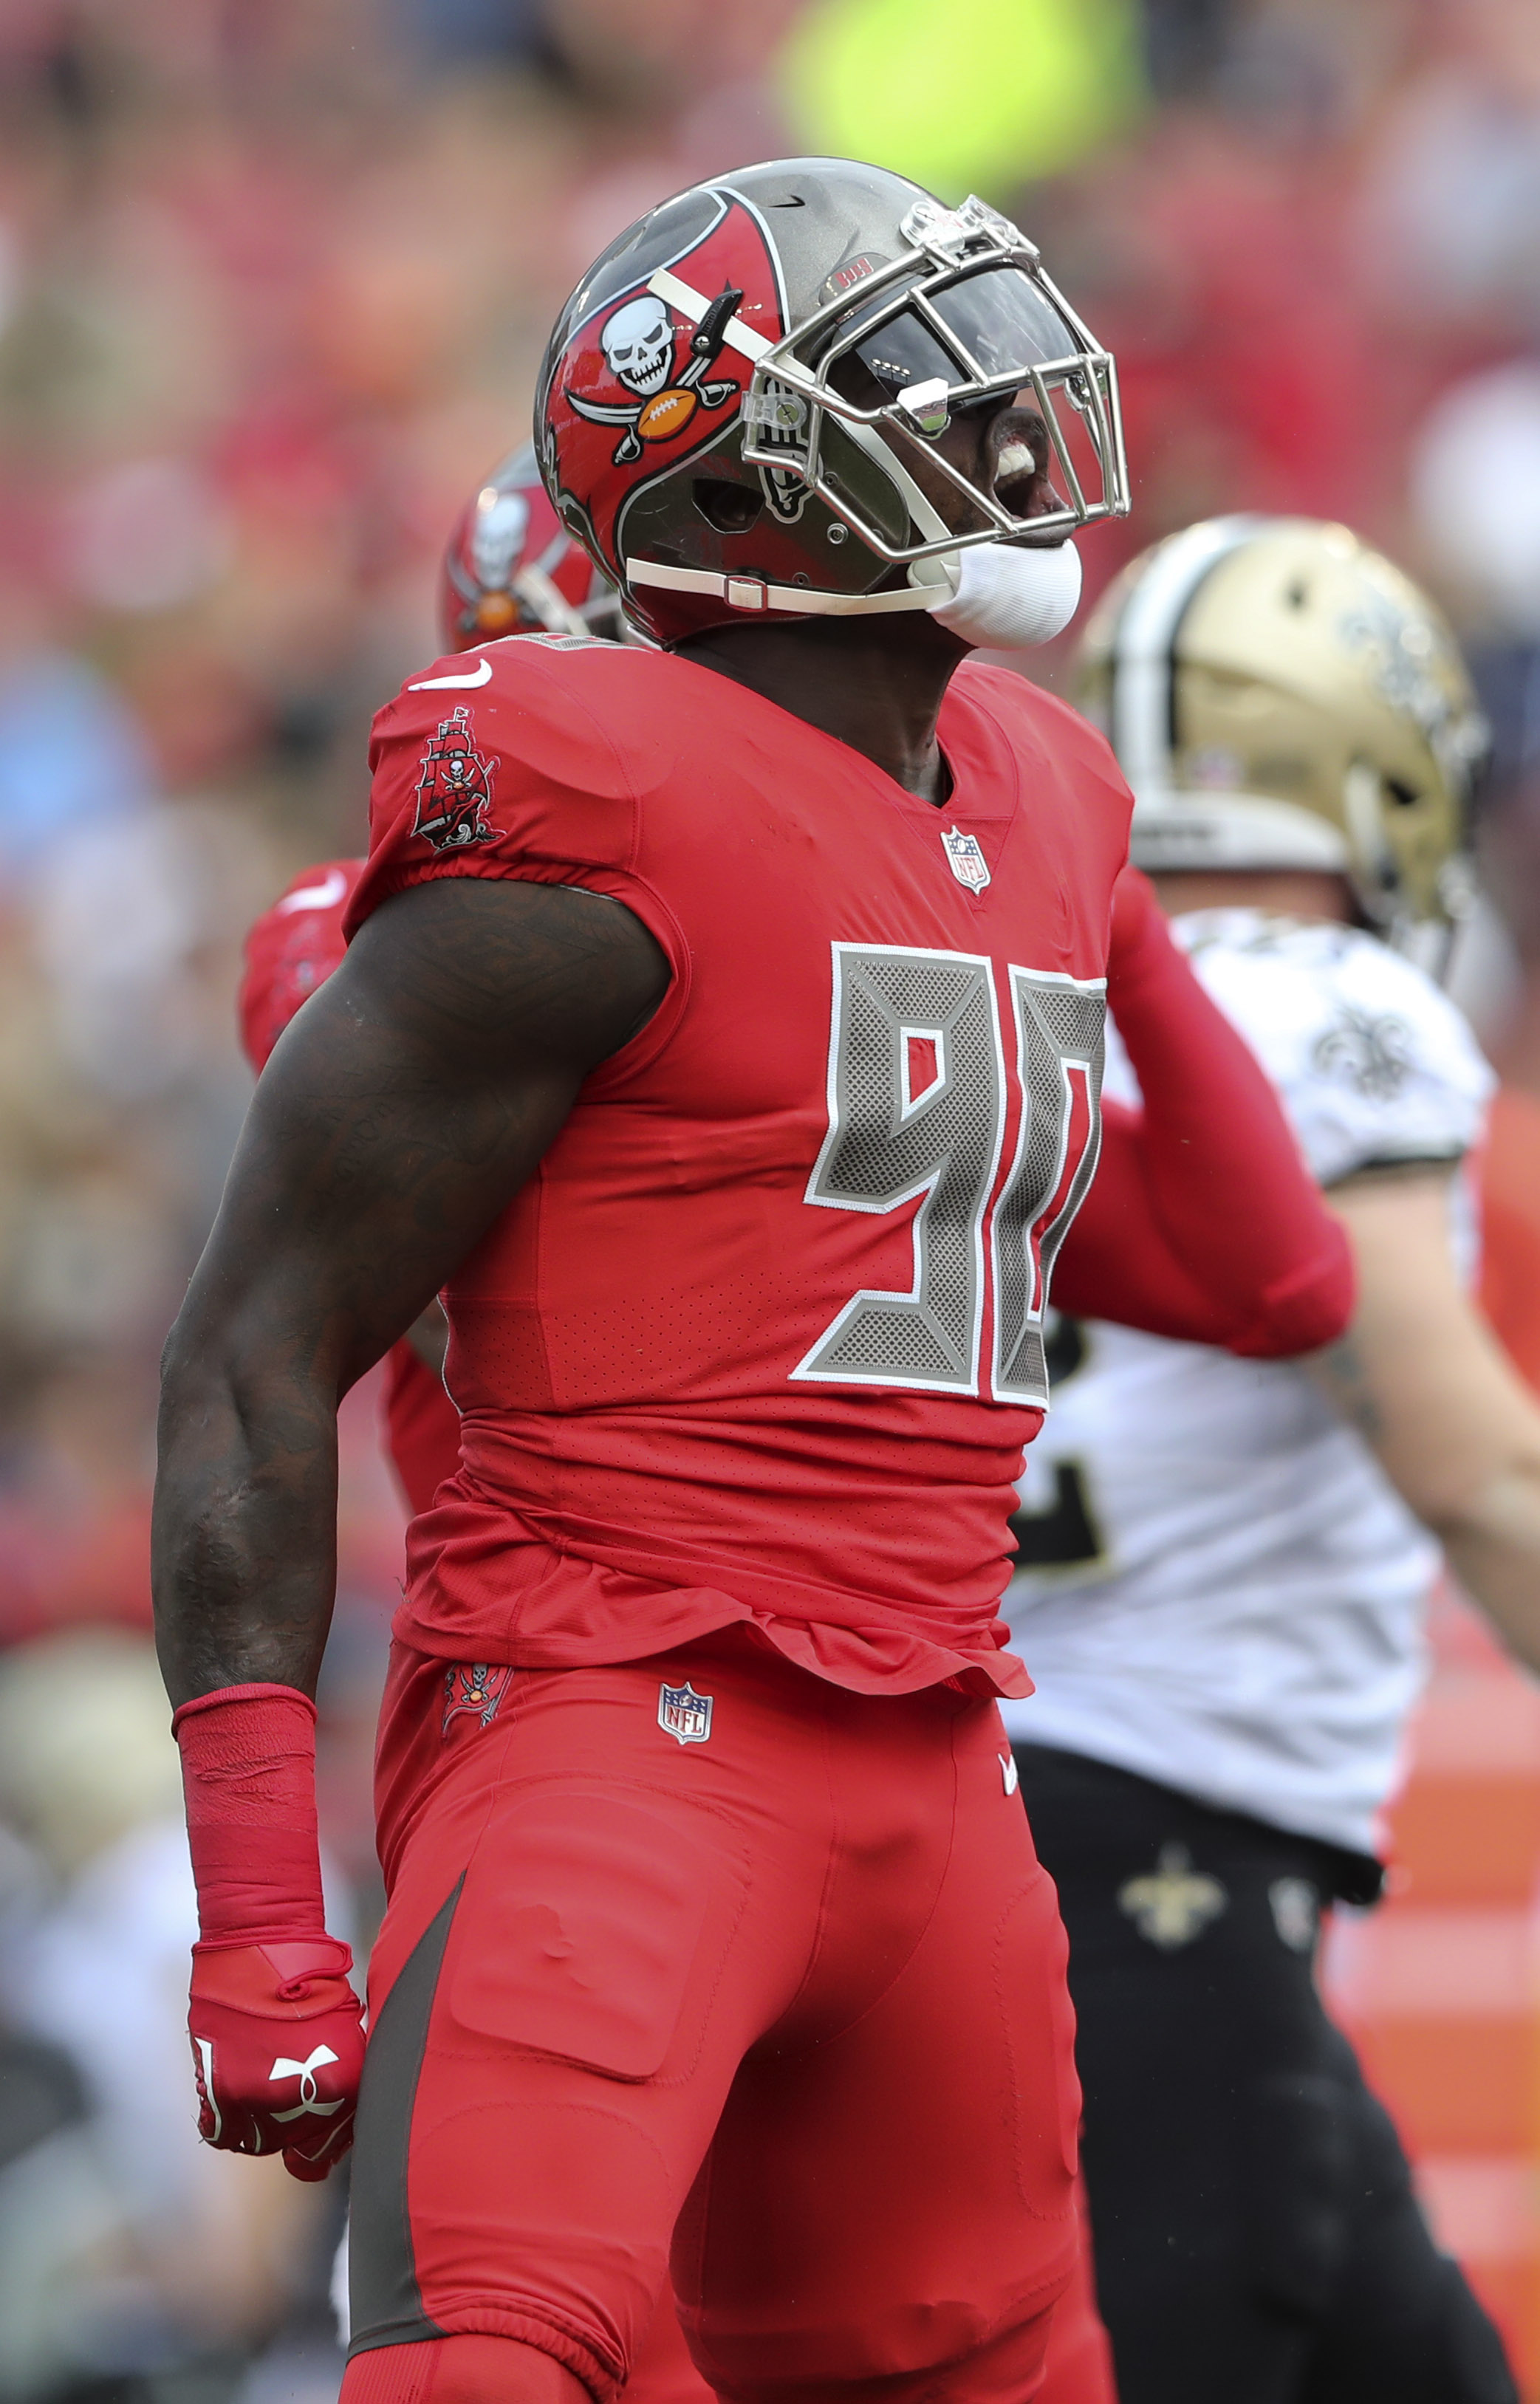 newest e52ab 7ff1f Bucs' Jason Pierre-Paul Involved In Car Accident